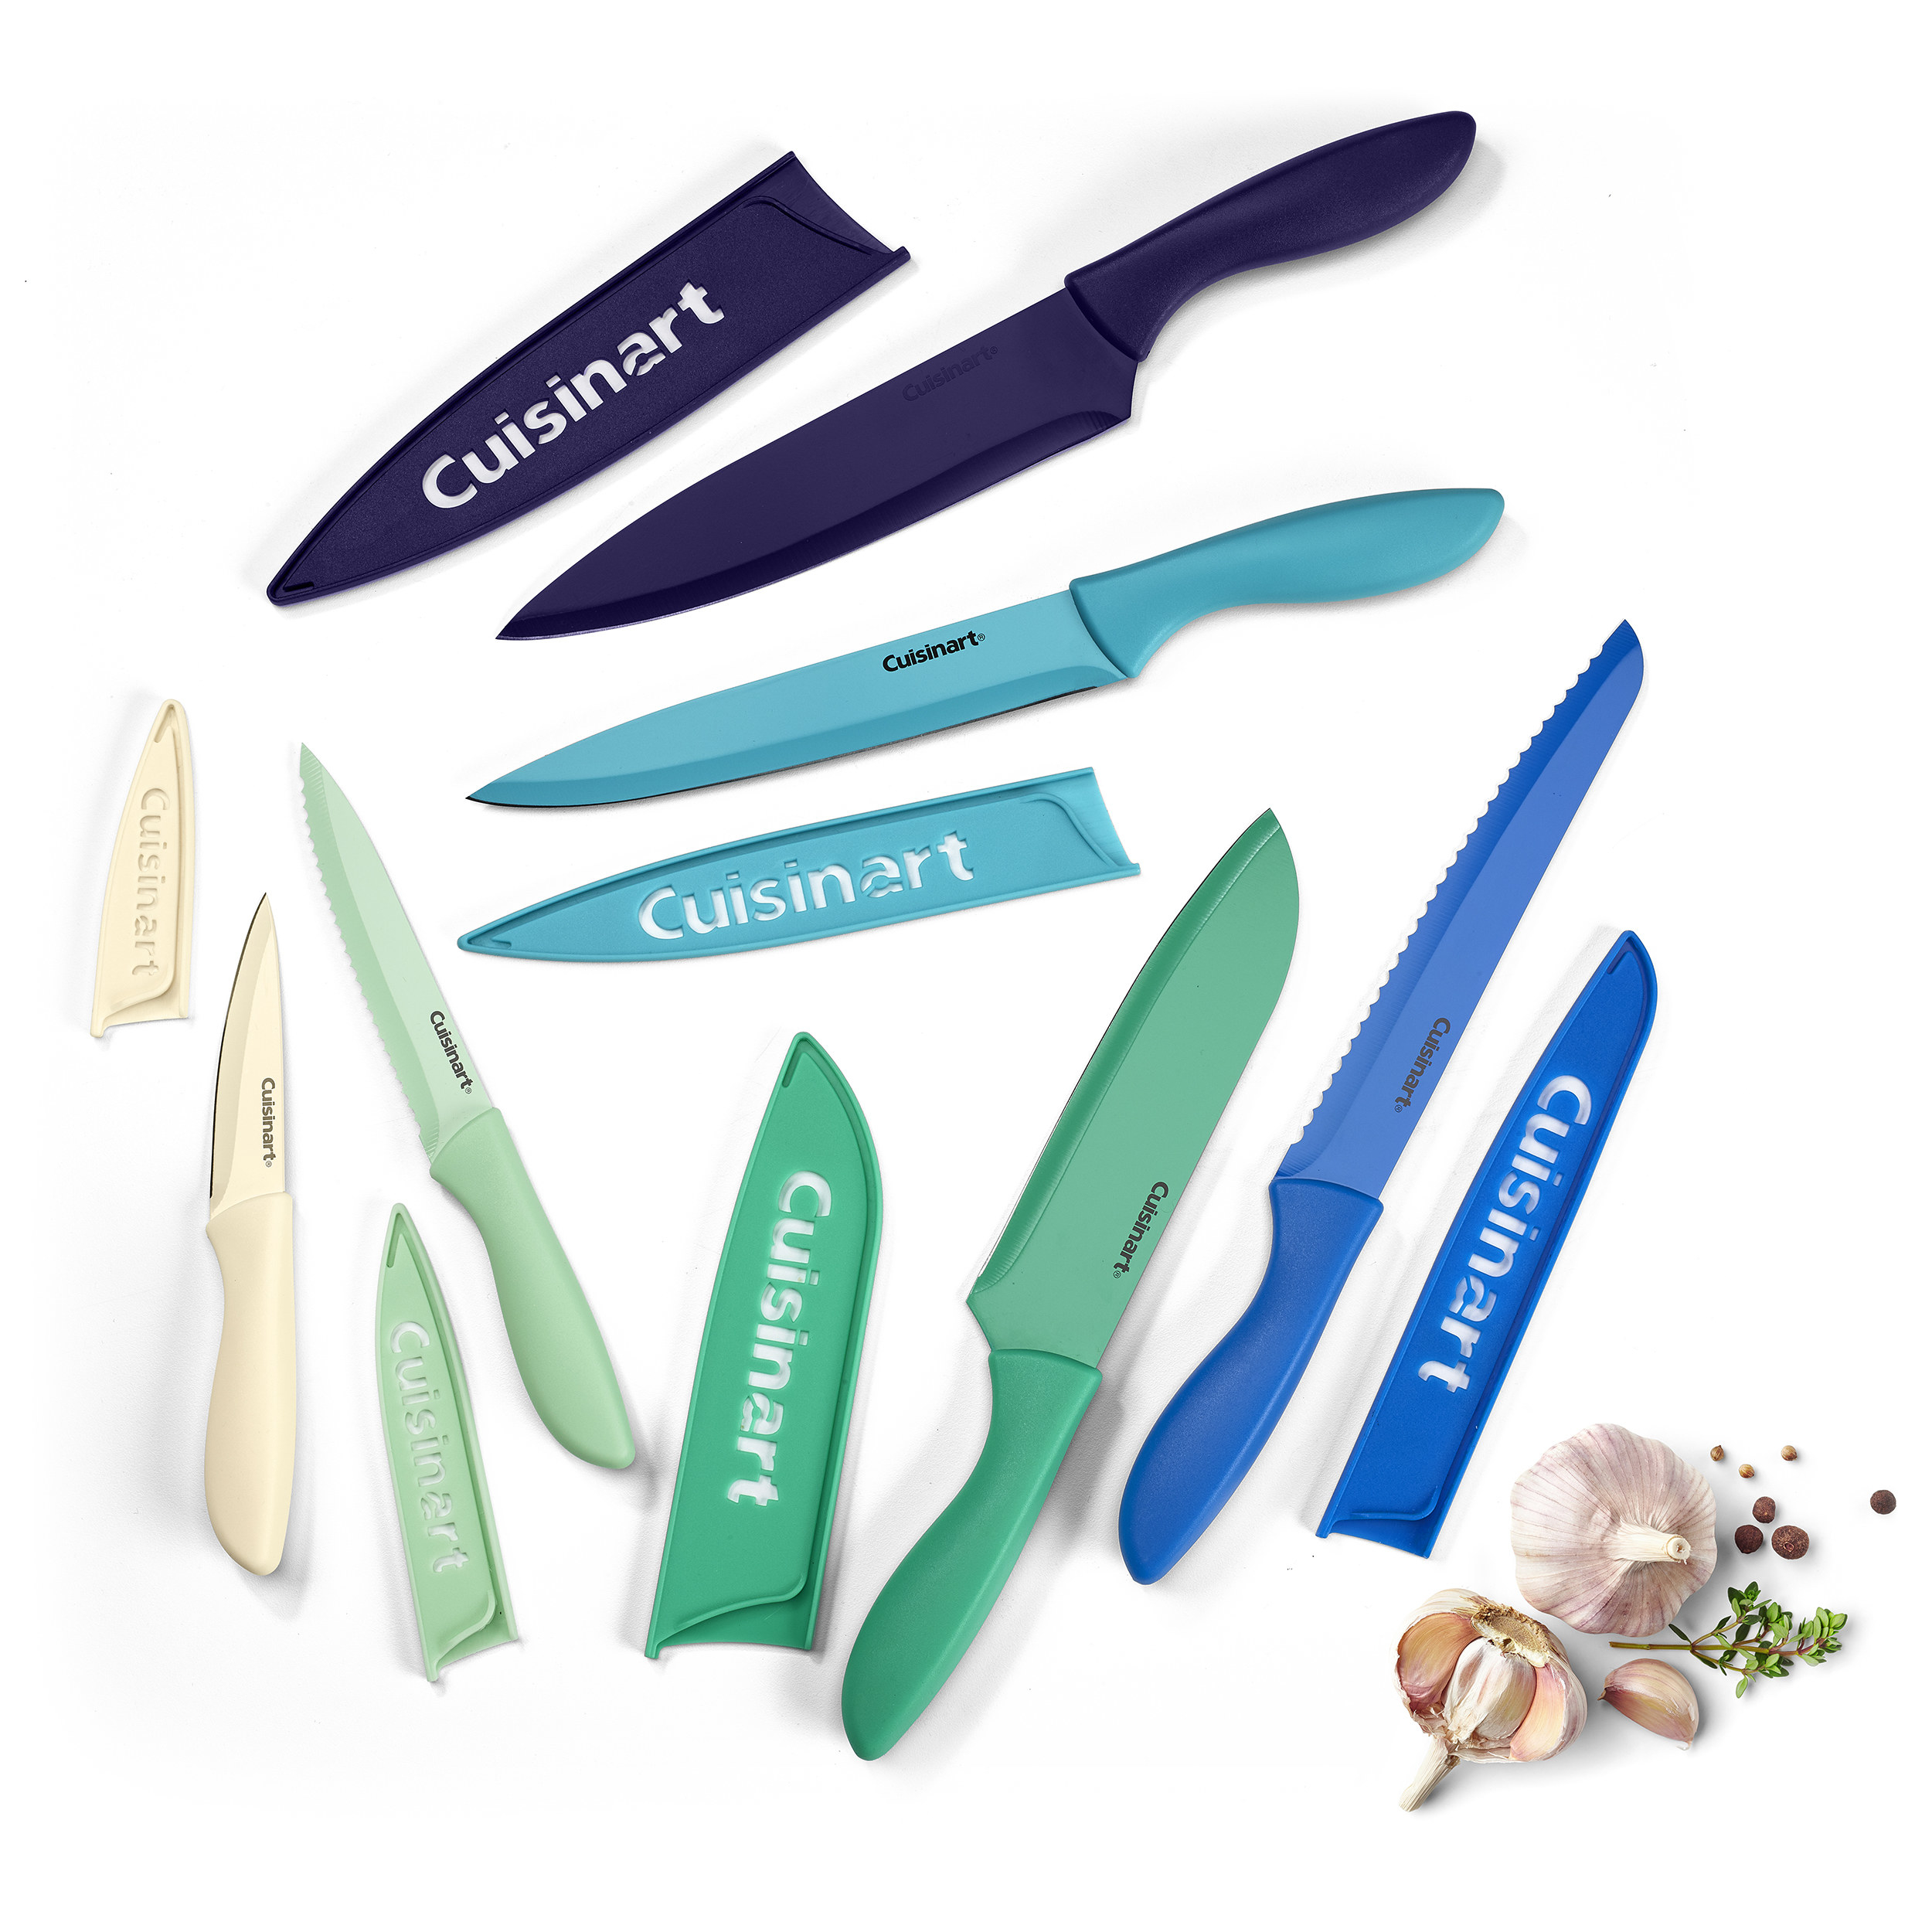 12-piece stainless steel knife set including six knives and knife covers in blue/green ombre colors